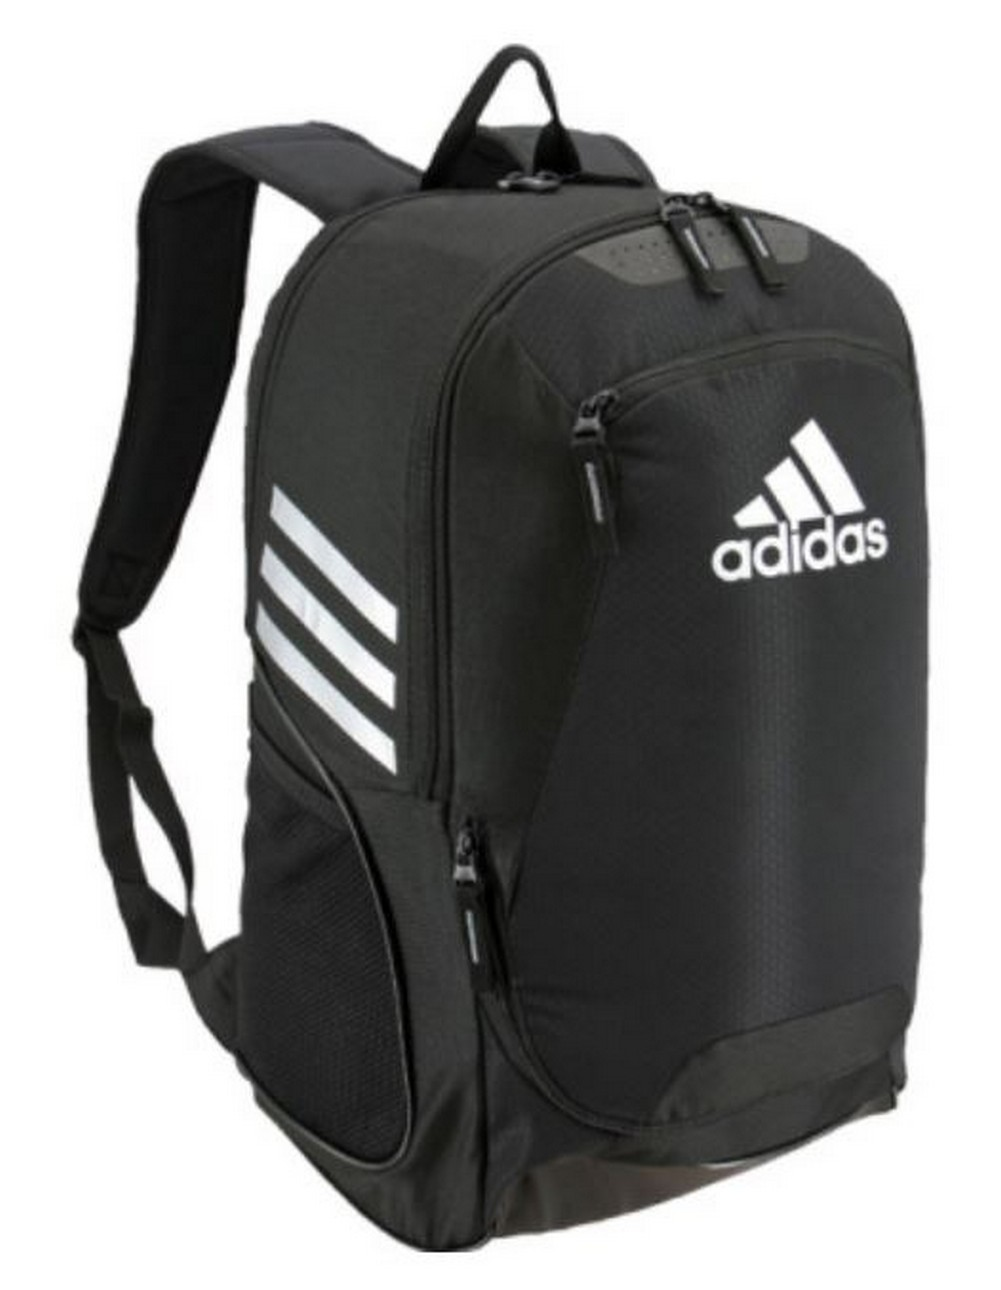 Details about Adidas Stadium II Backpack Fits Soccer Ball Sport Bag 4 Gym Color Options 5144